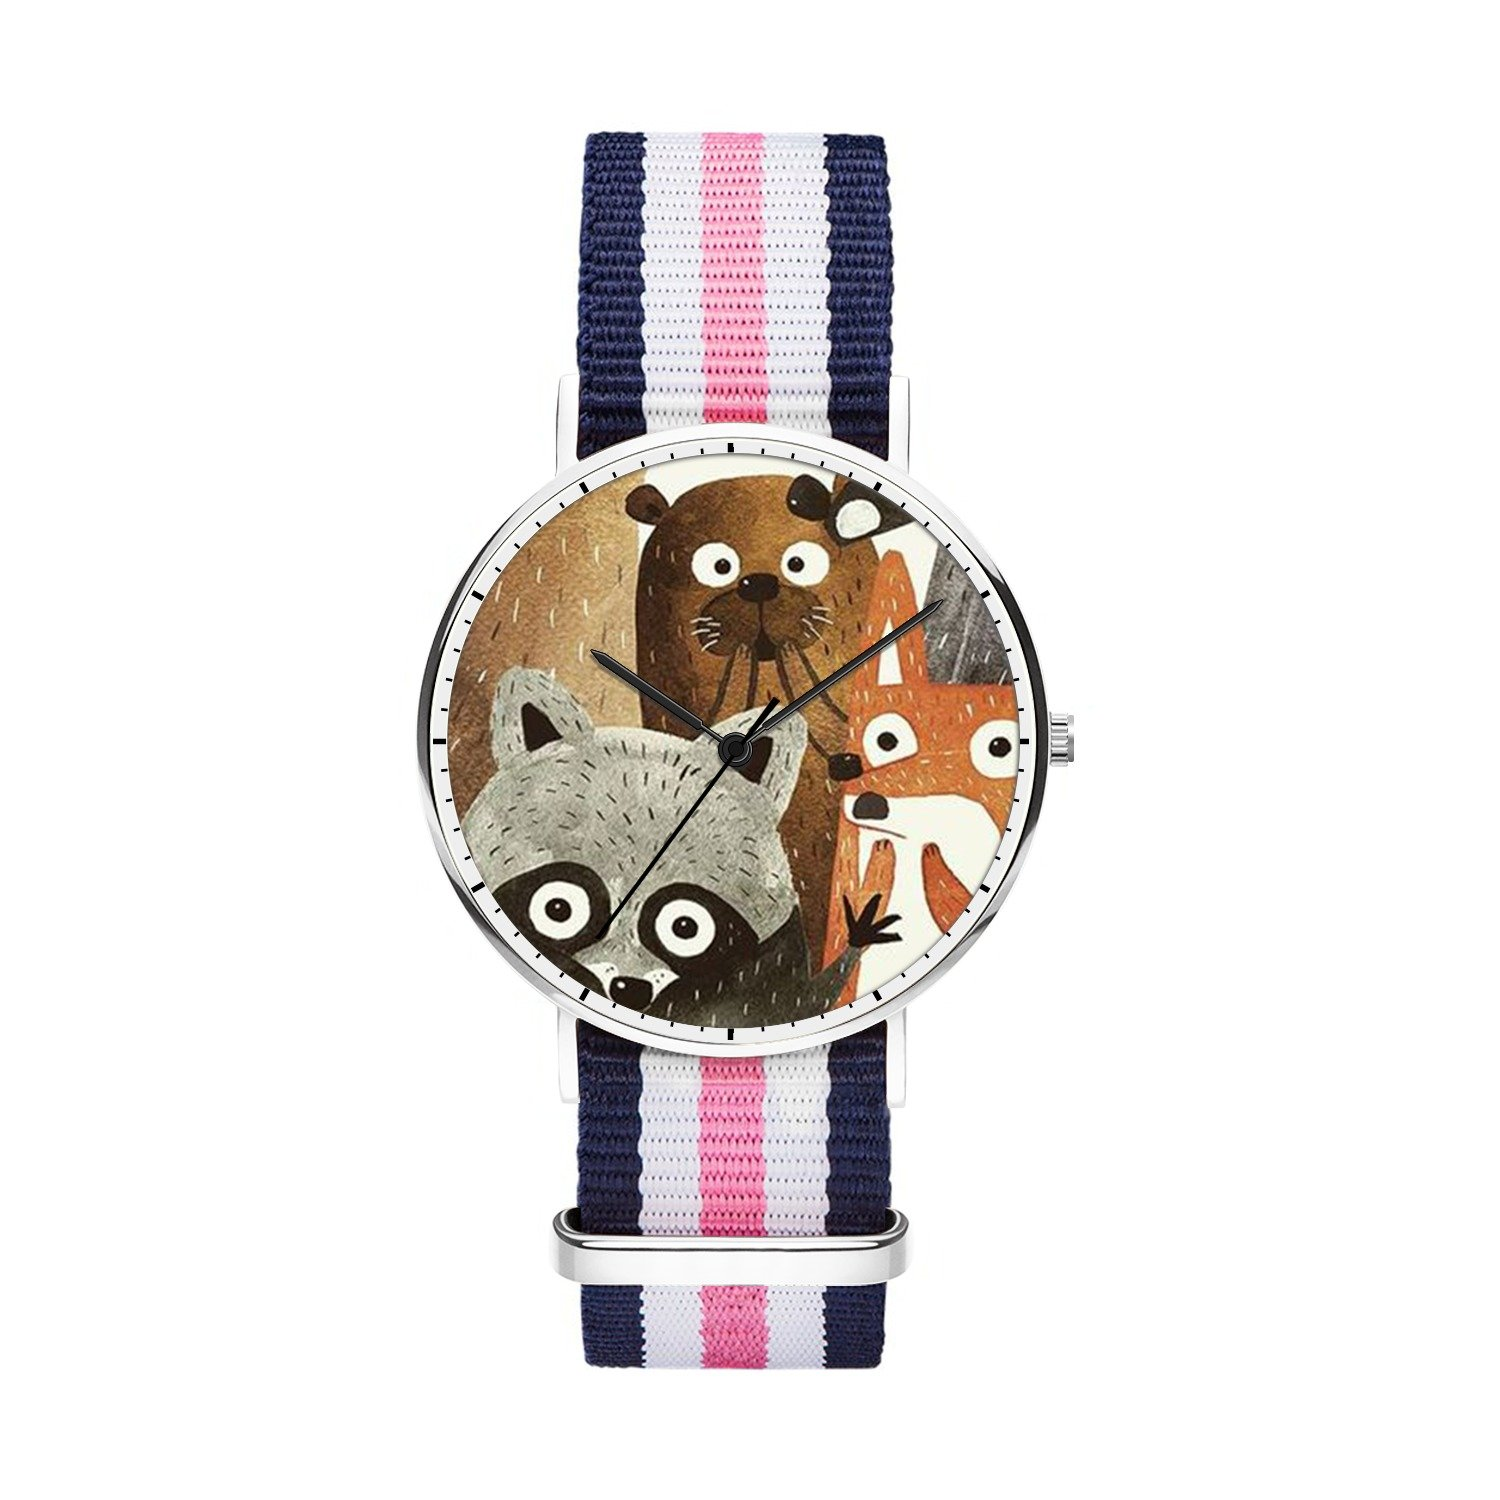 FELOOWSE Girls Watches, Women Watches, Sliver Slim Minimalist Imported Japanese Quartz PracticalWaterproof Unique Personalized Youth Fashion Design Cute Watches for Women.- Raccoon